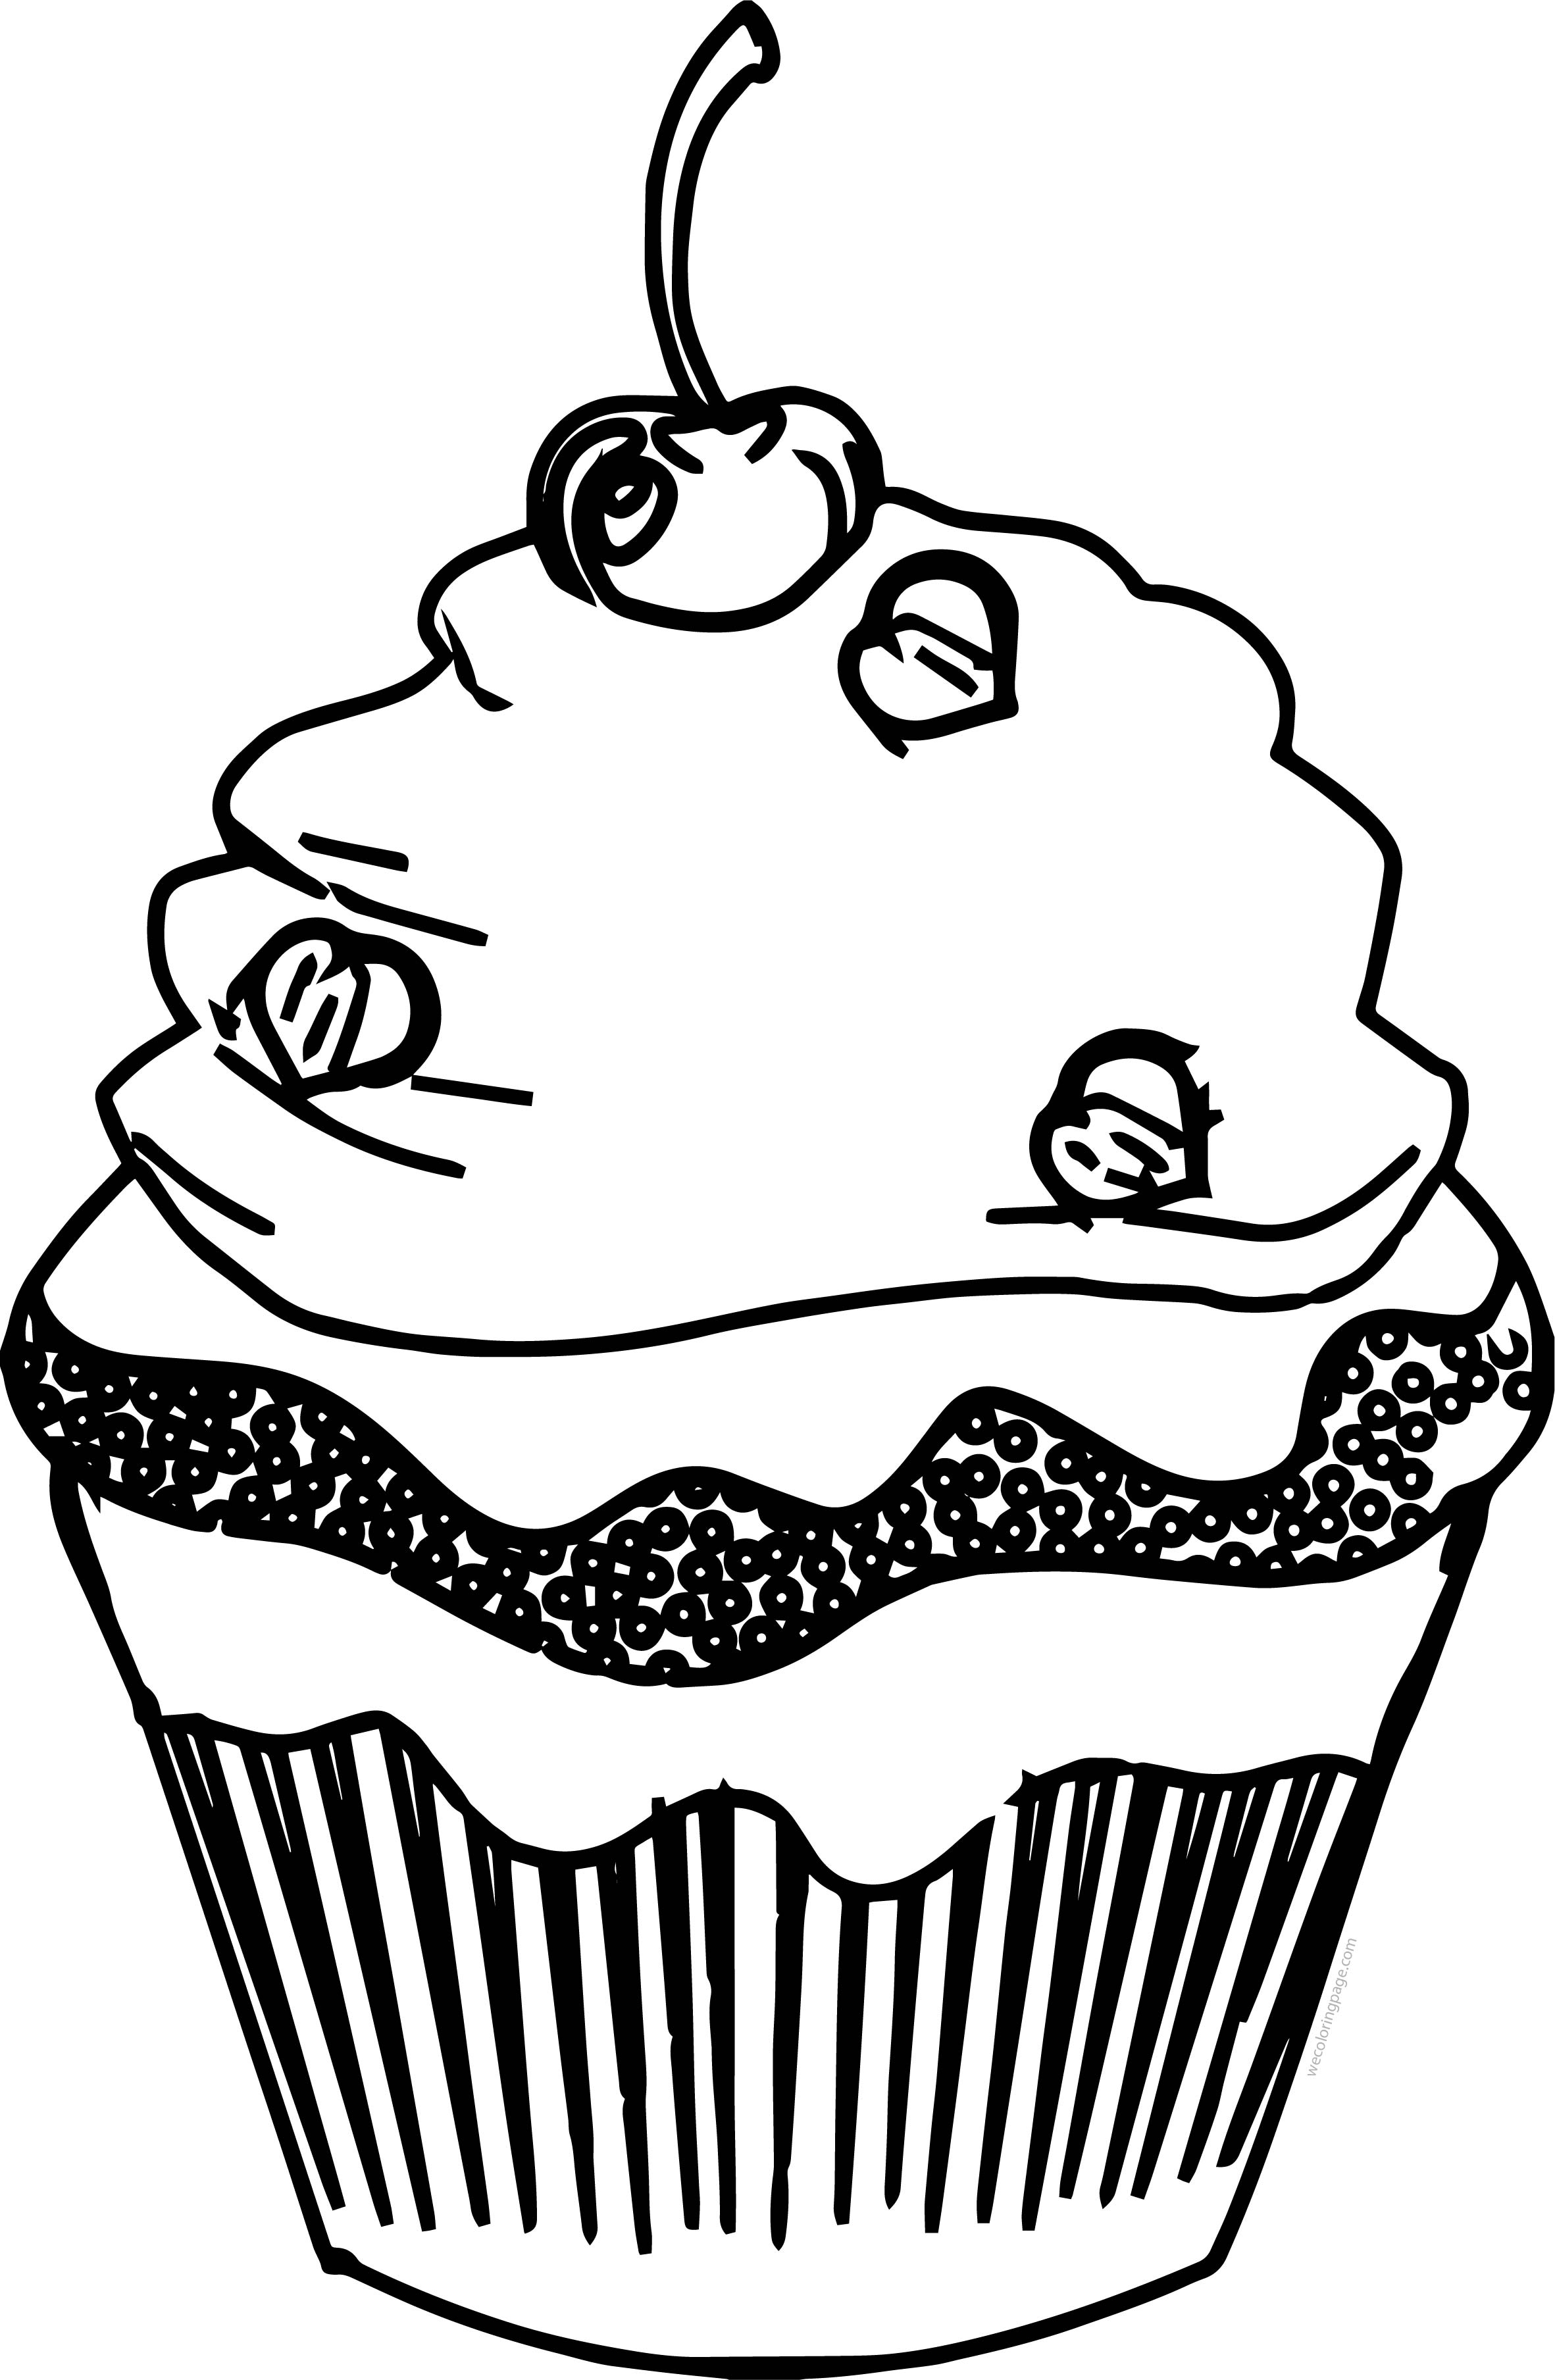 Cupcake Cup Cake Good Coloring Page | Wecoloringpage.com